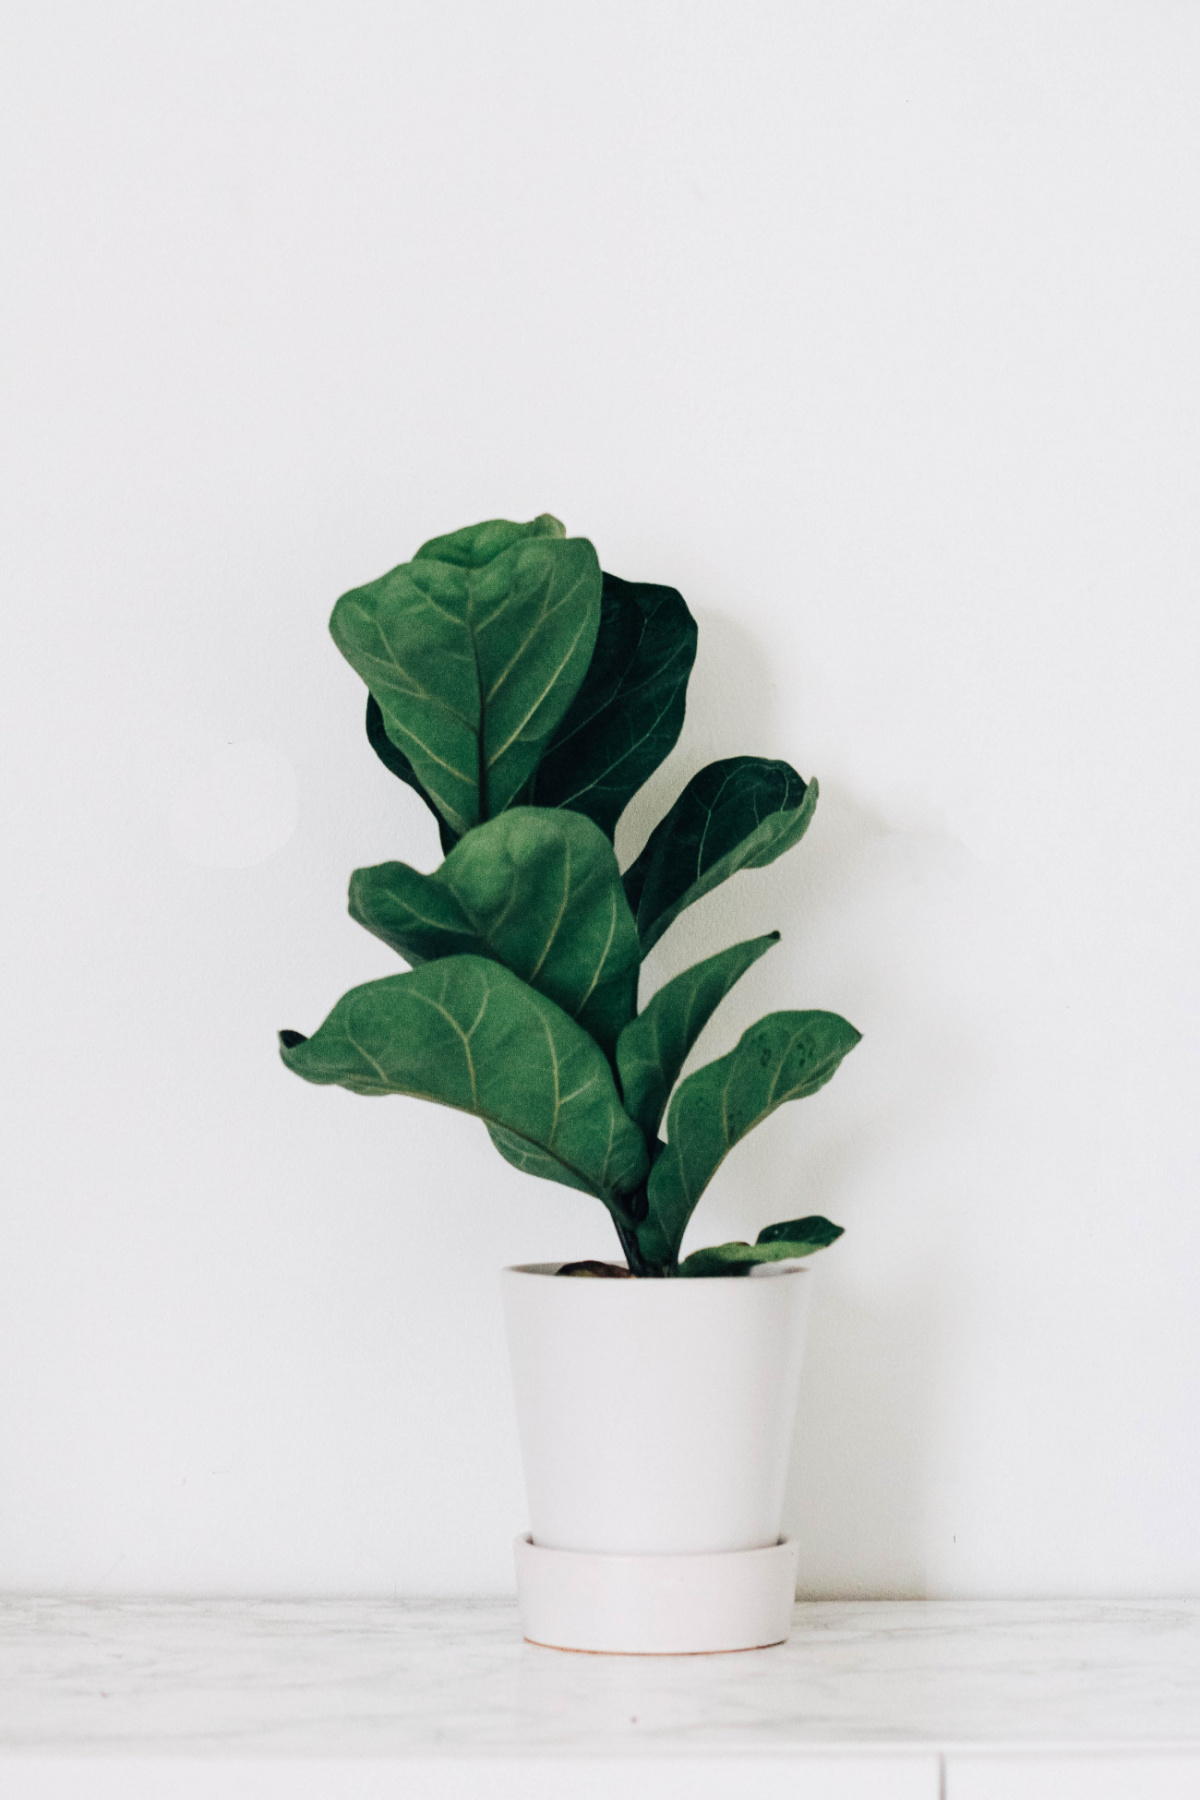 A fern in front of a white wall